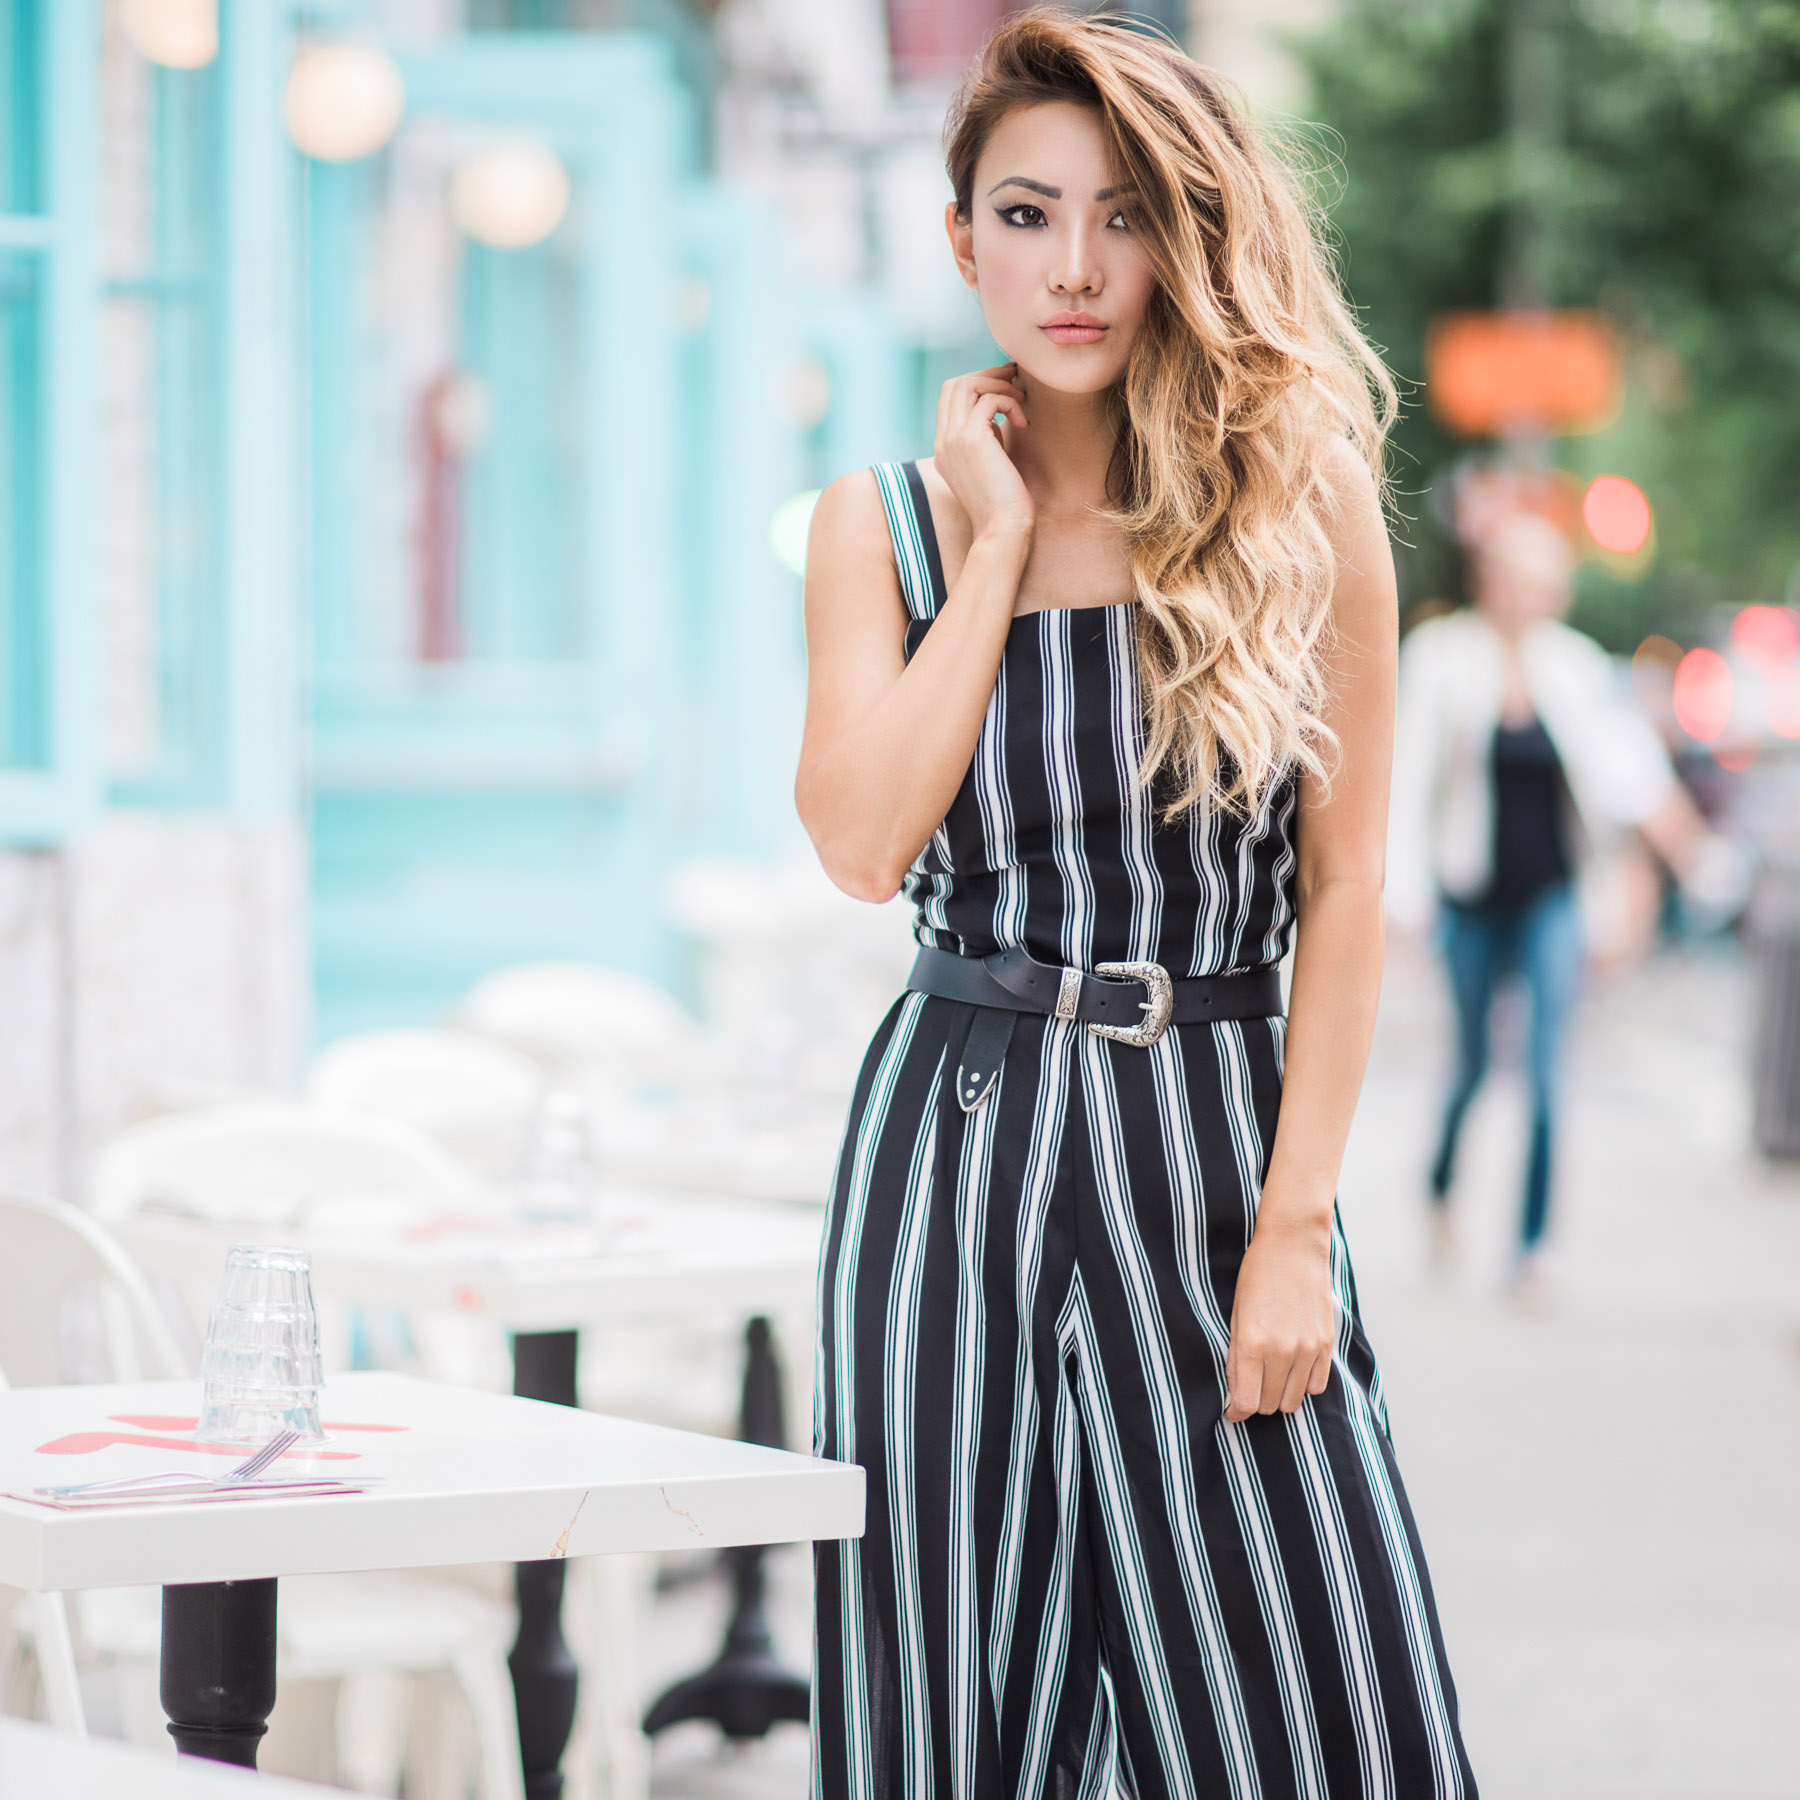 Jumpsuit - The 7 Key Pieces To Nail A Great Happy Hour Outfit // NotJessFashion.com